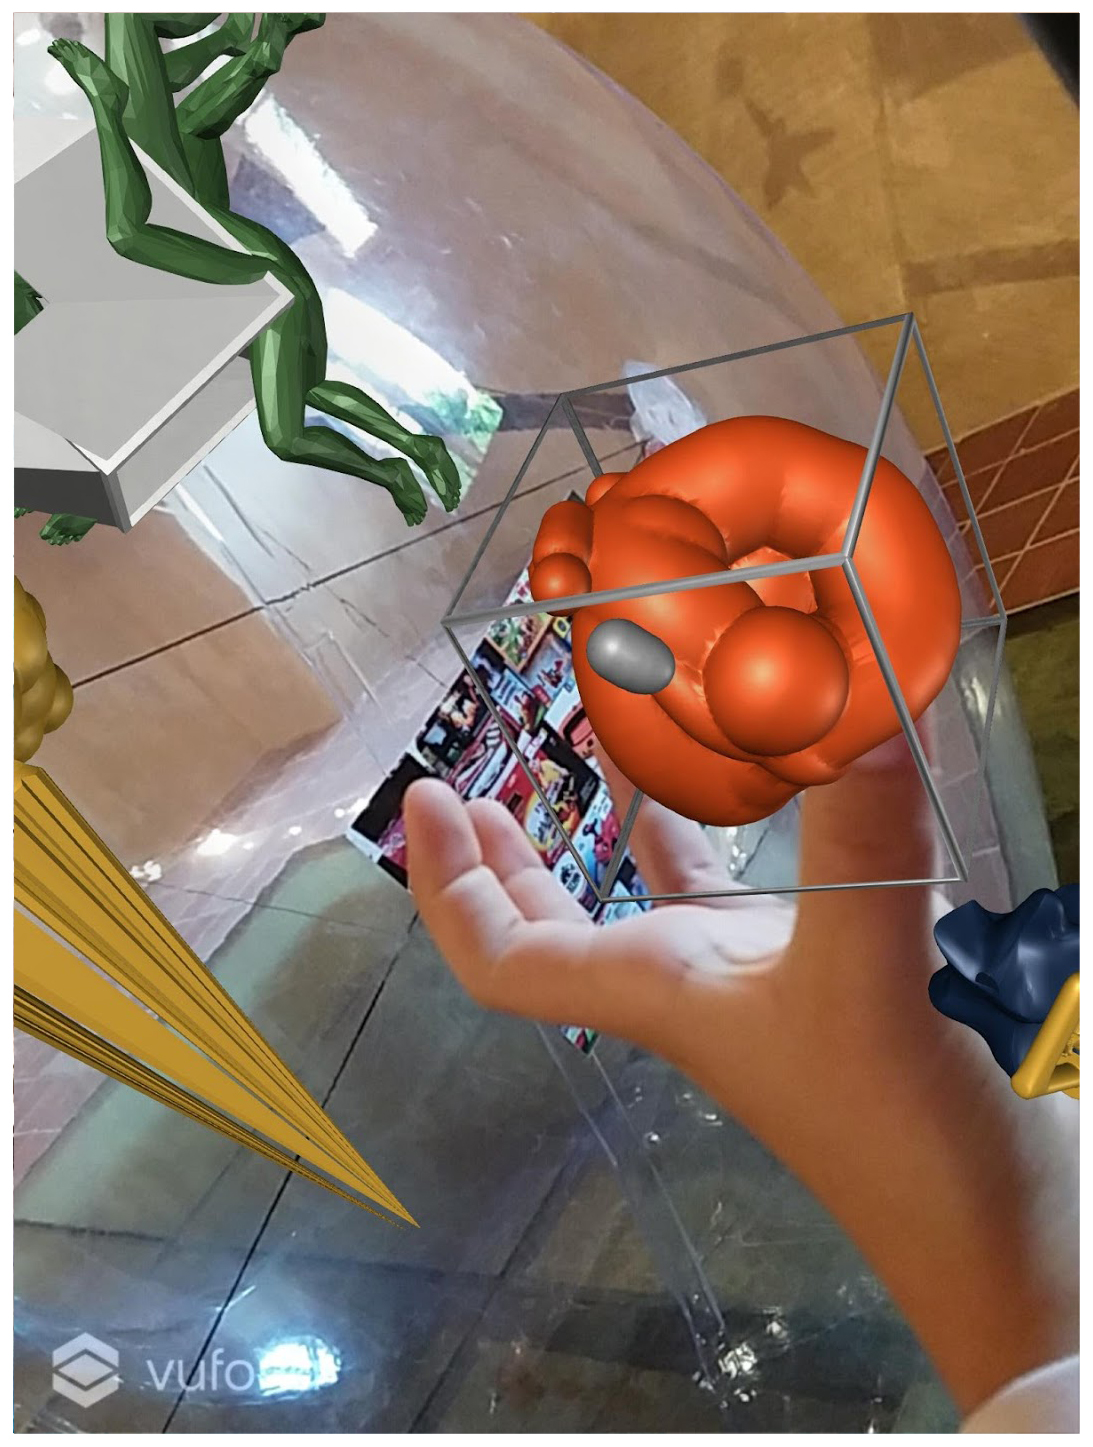 detail view augmented reality app